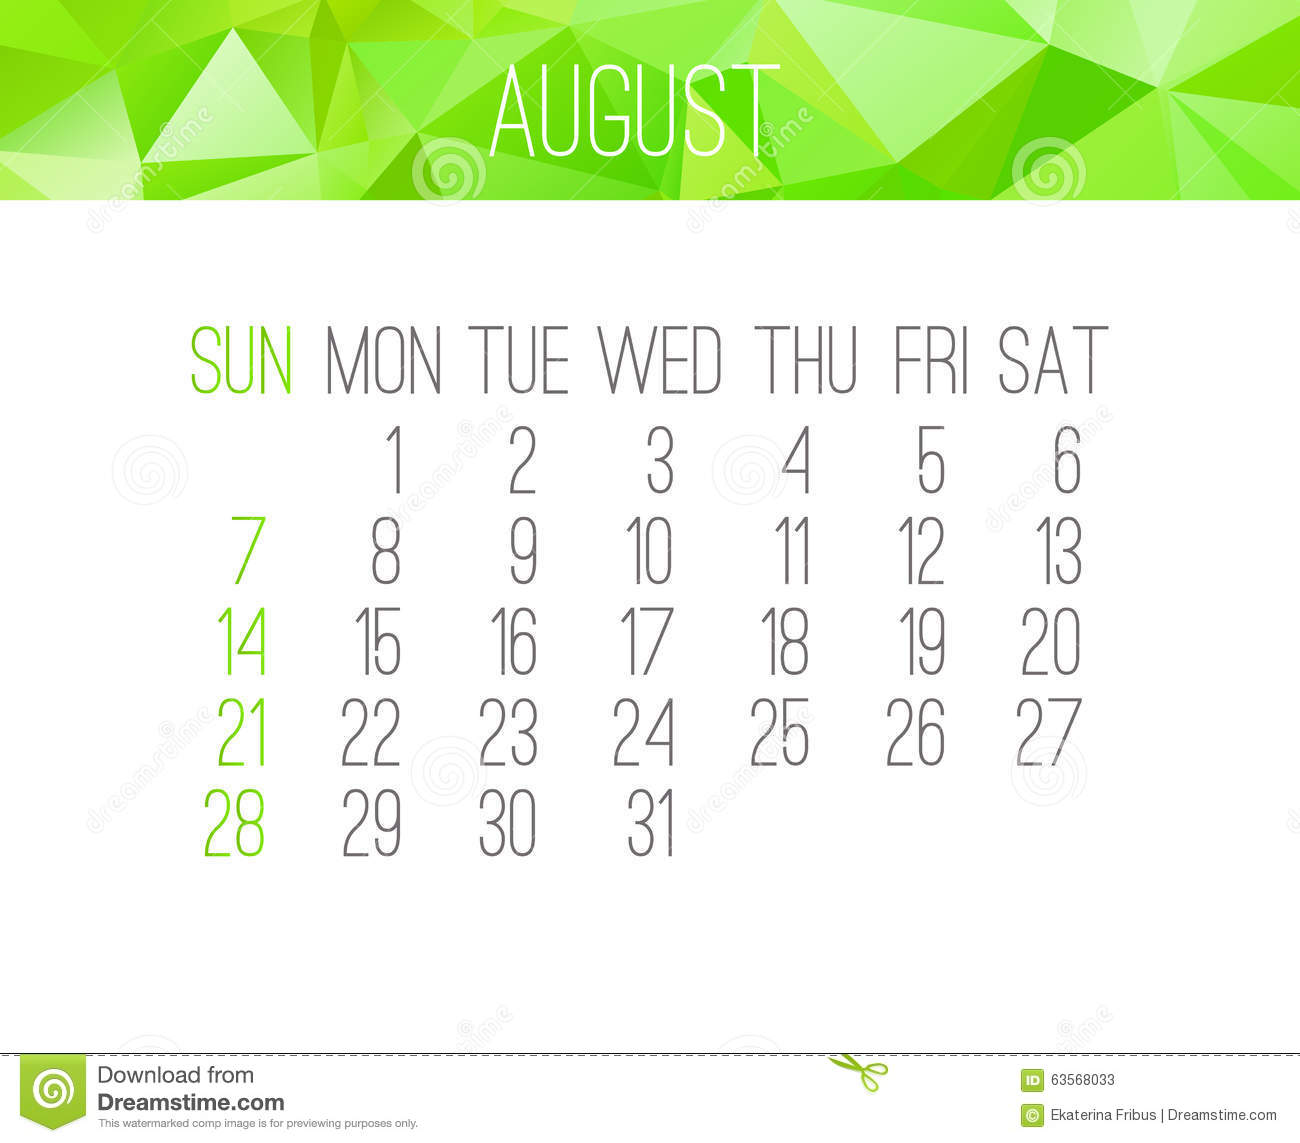 August 2016 calendar clipart clipart freeuse library August month calendar clipart - ClipartFest clipart freeuse library